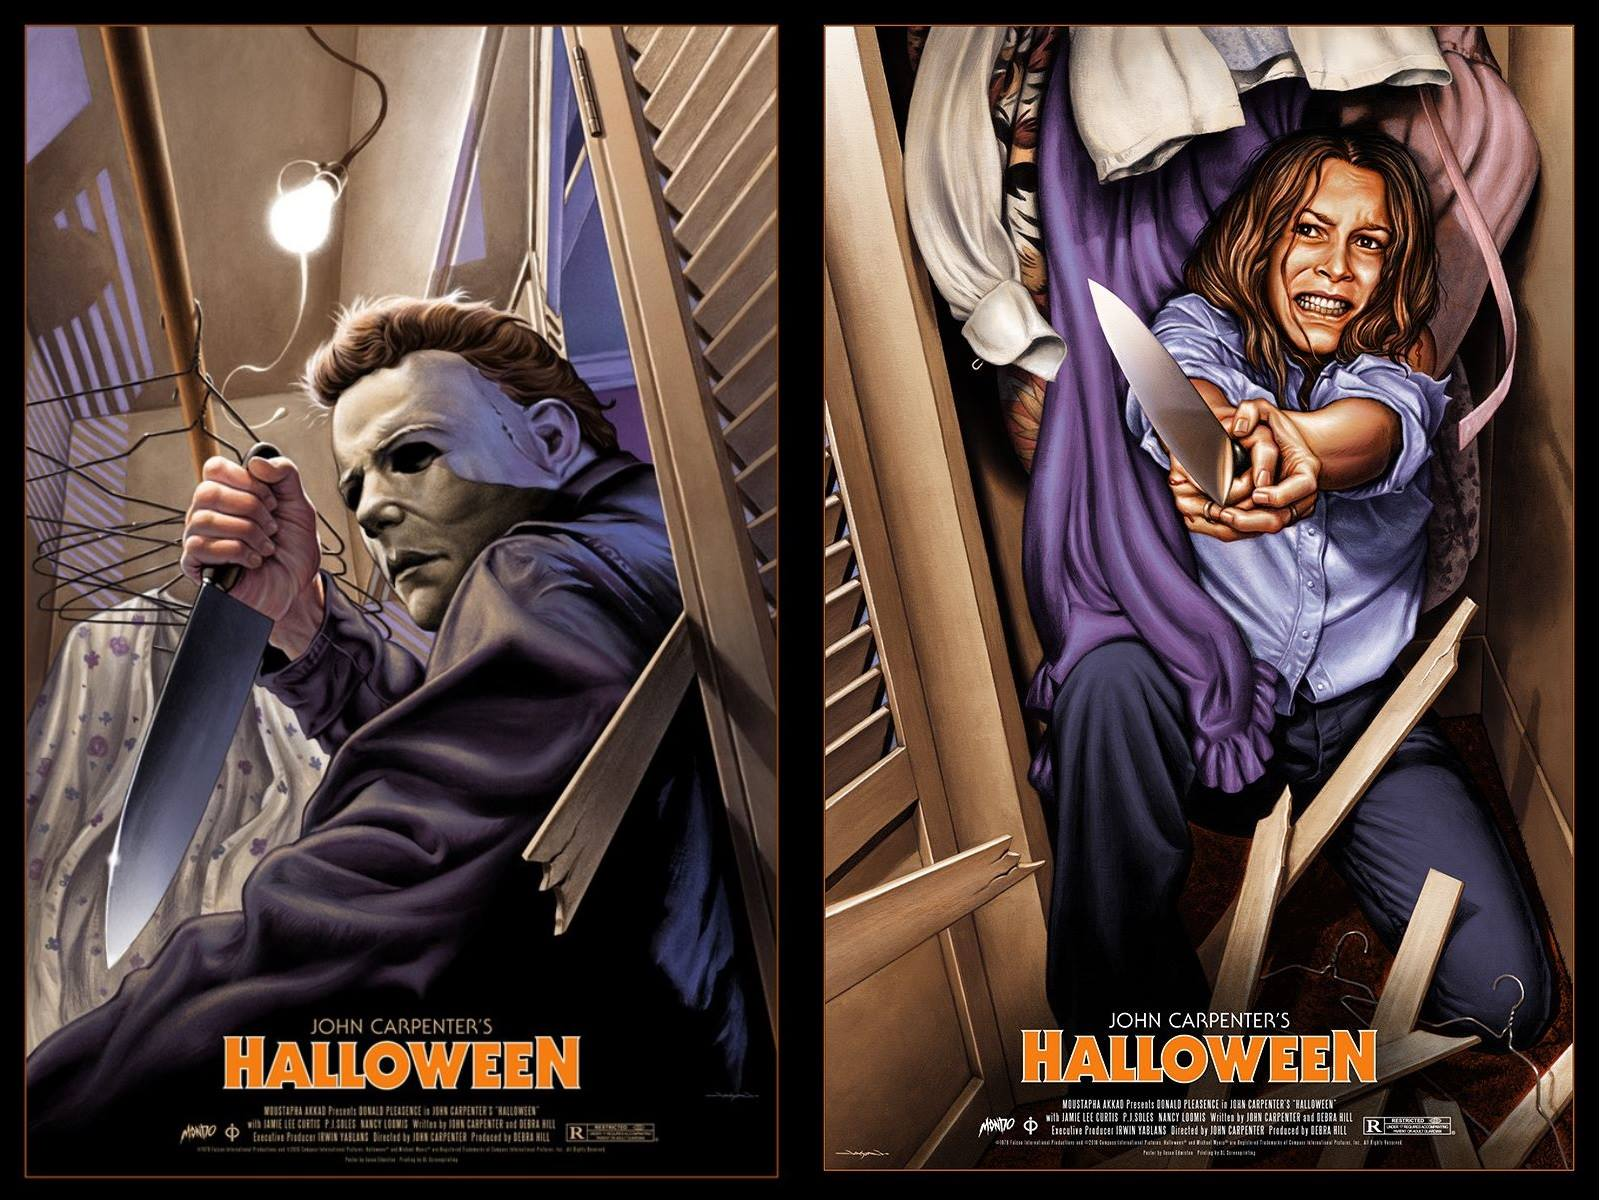 Halloween 2018 Movie Poster: Halloween Poster By Jason Edmiston Available At Halloween